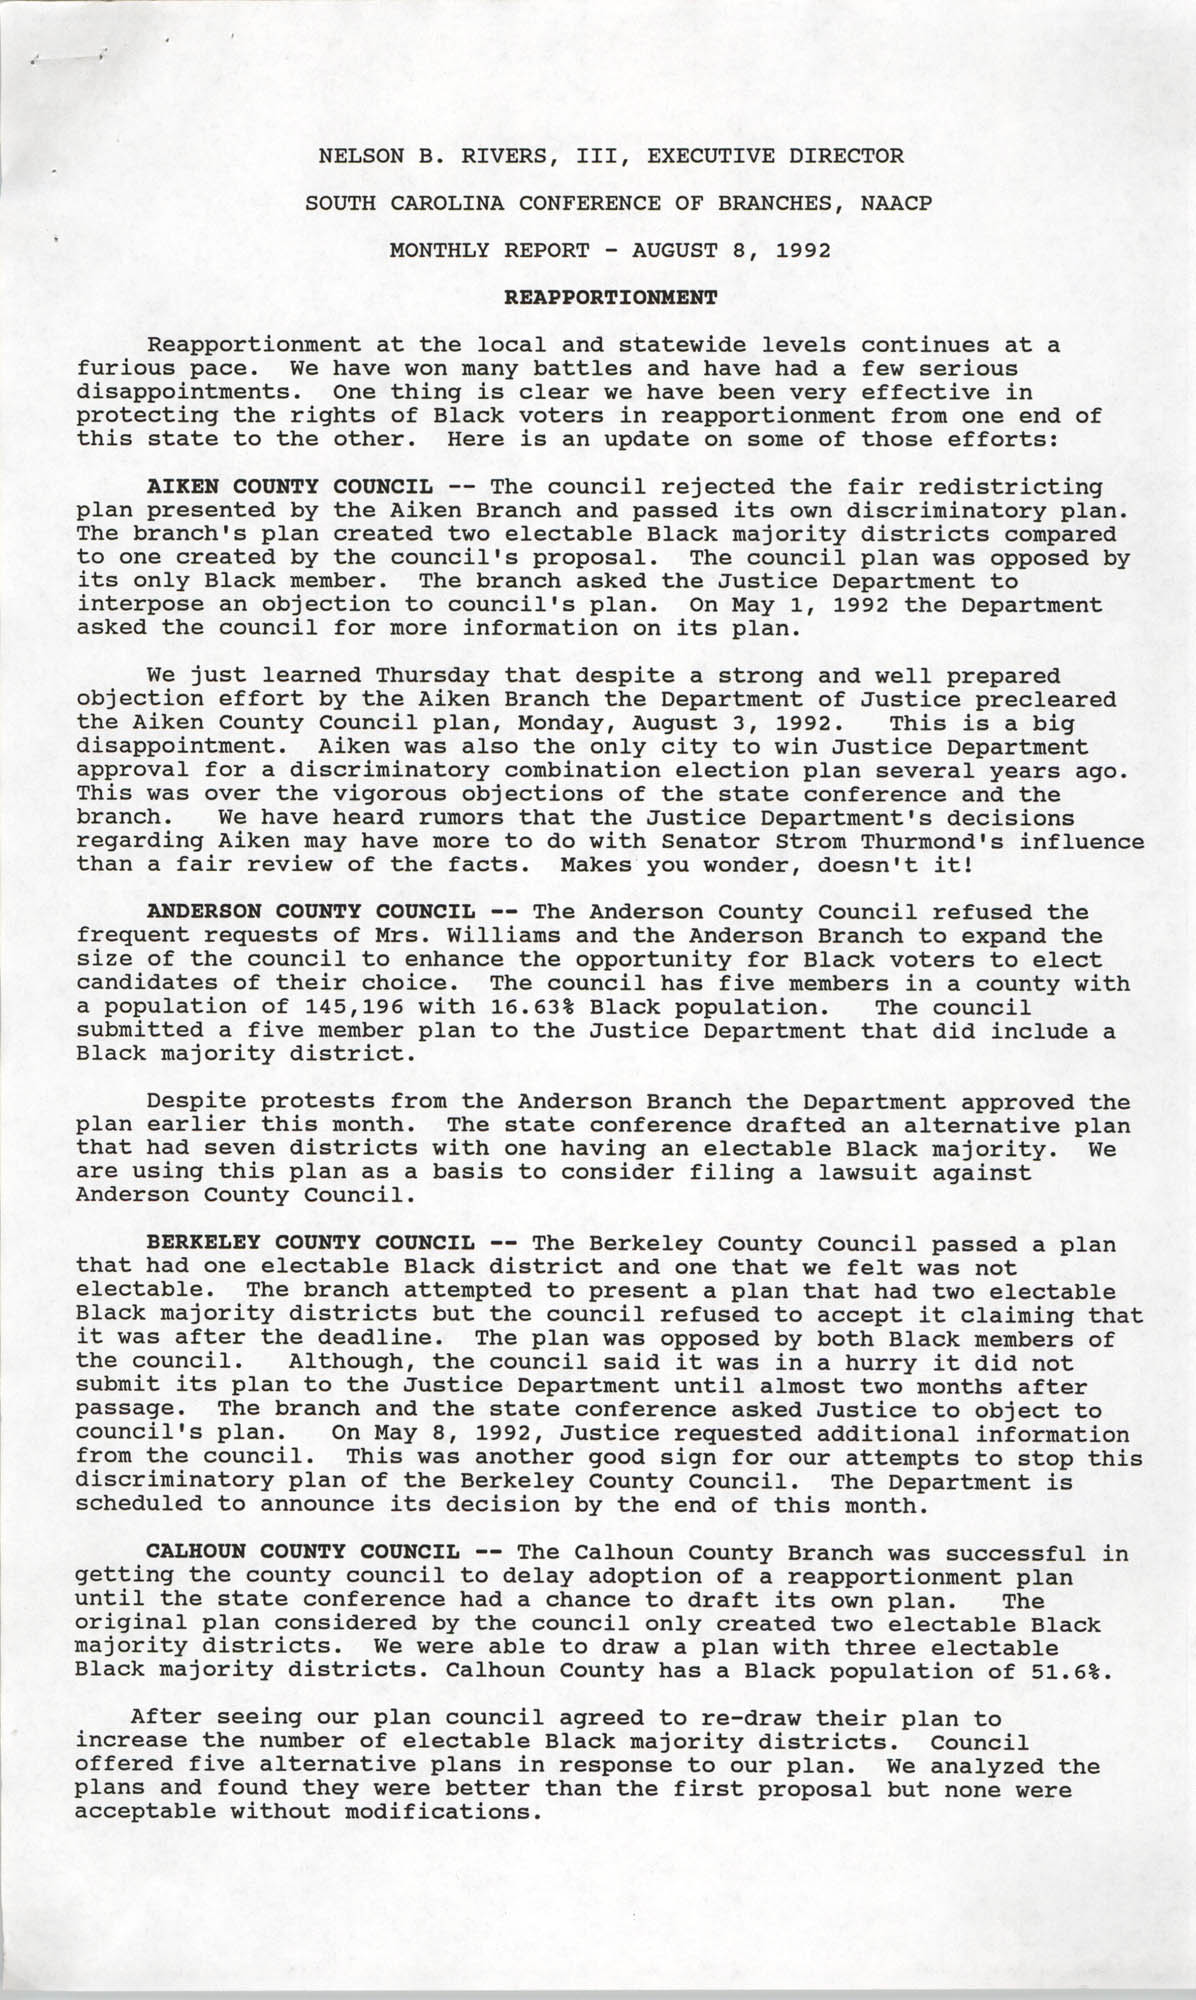 South Carolina Conference of Branches, NAACP Monthly Report, August 8, 1992, Page 1